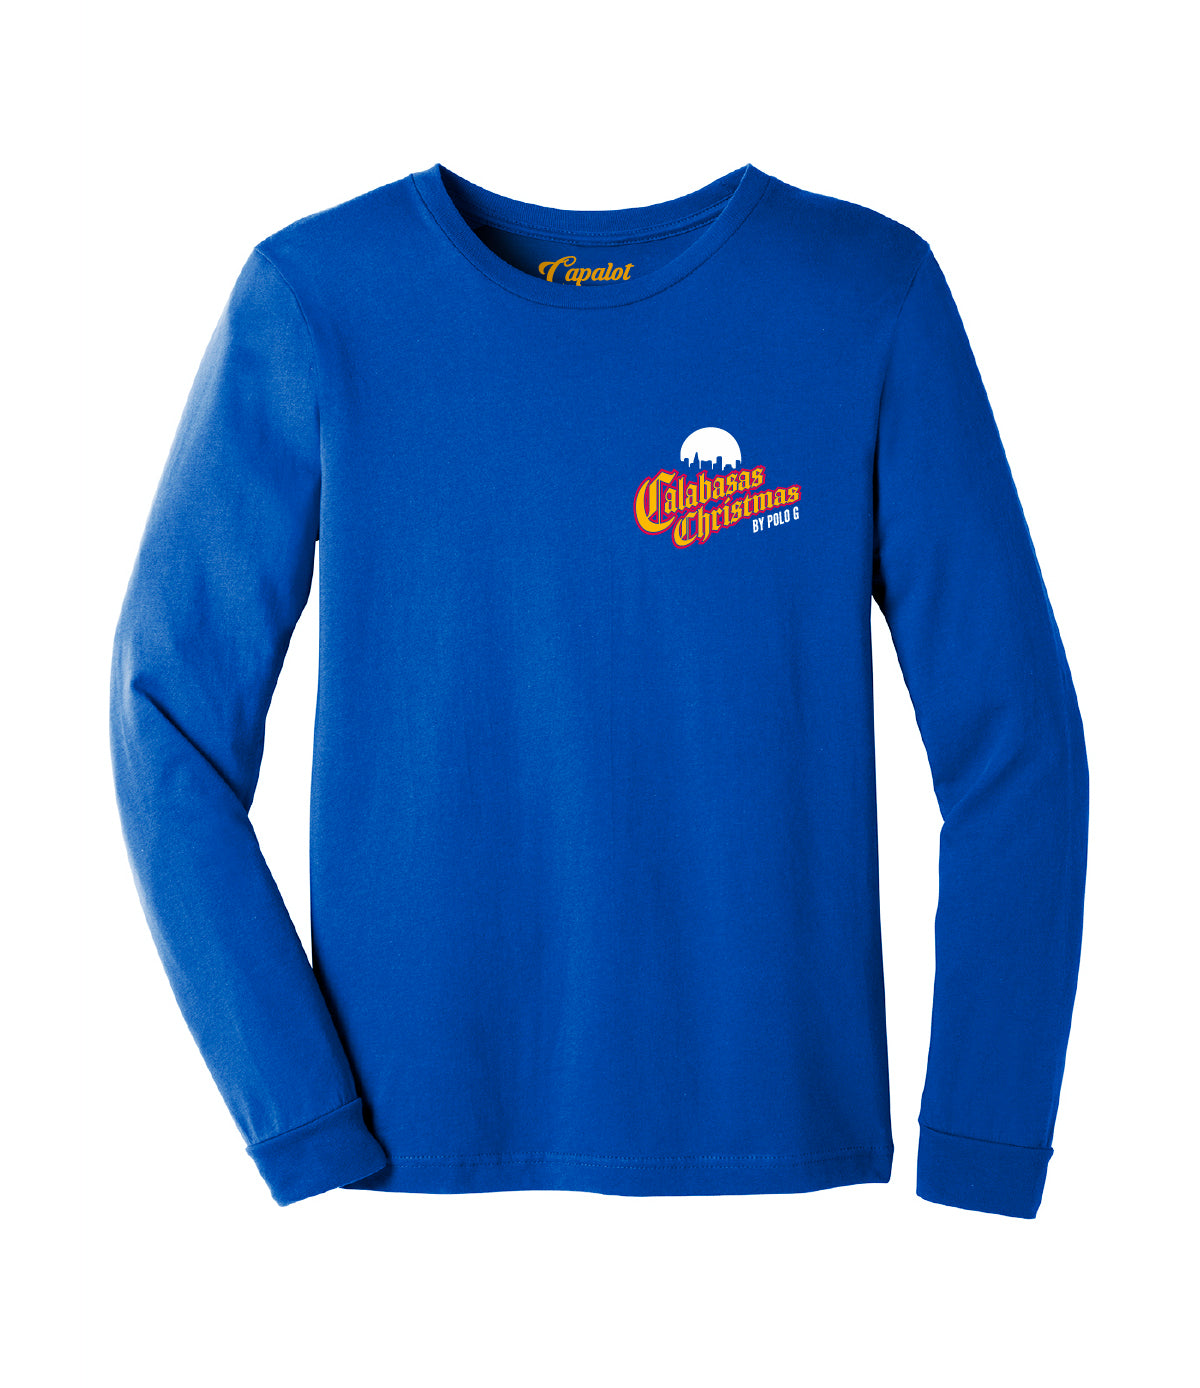 Calabasas Christmas Long Sleeve Tee in Royal